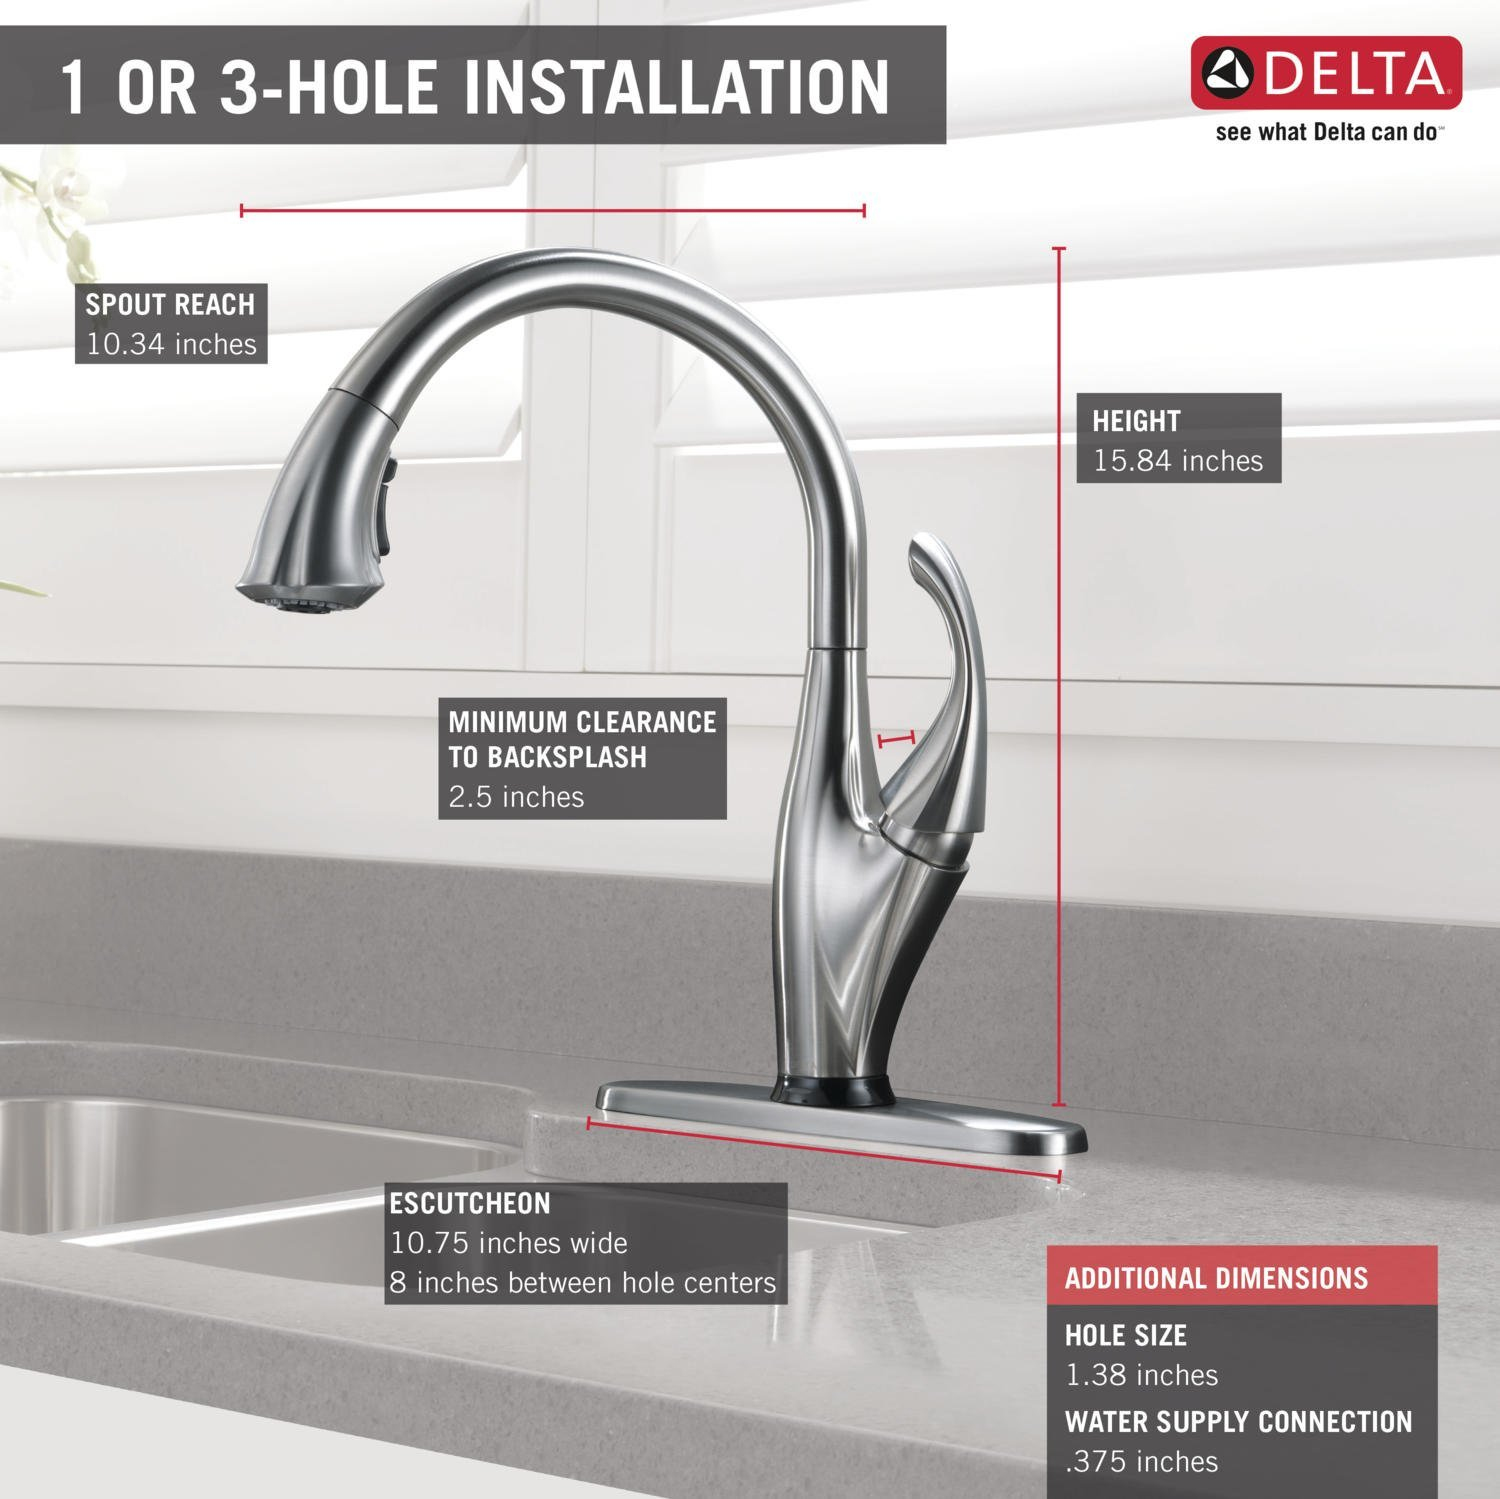 Delta Faucet 9192T-SD-DST Addison Single Handle Pull-Down Kitchen Faucet with Touch2O Technology and Soap Dispenser, Chrome by DELTA FAUCET (Image #3)